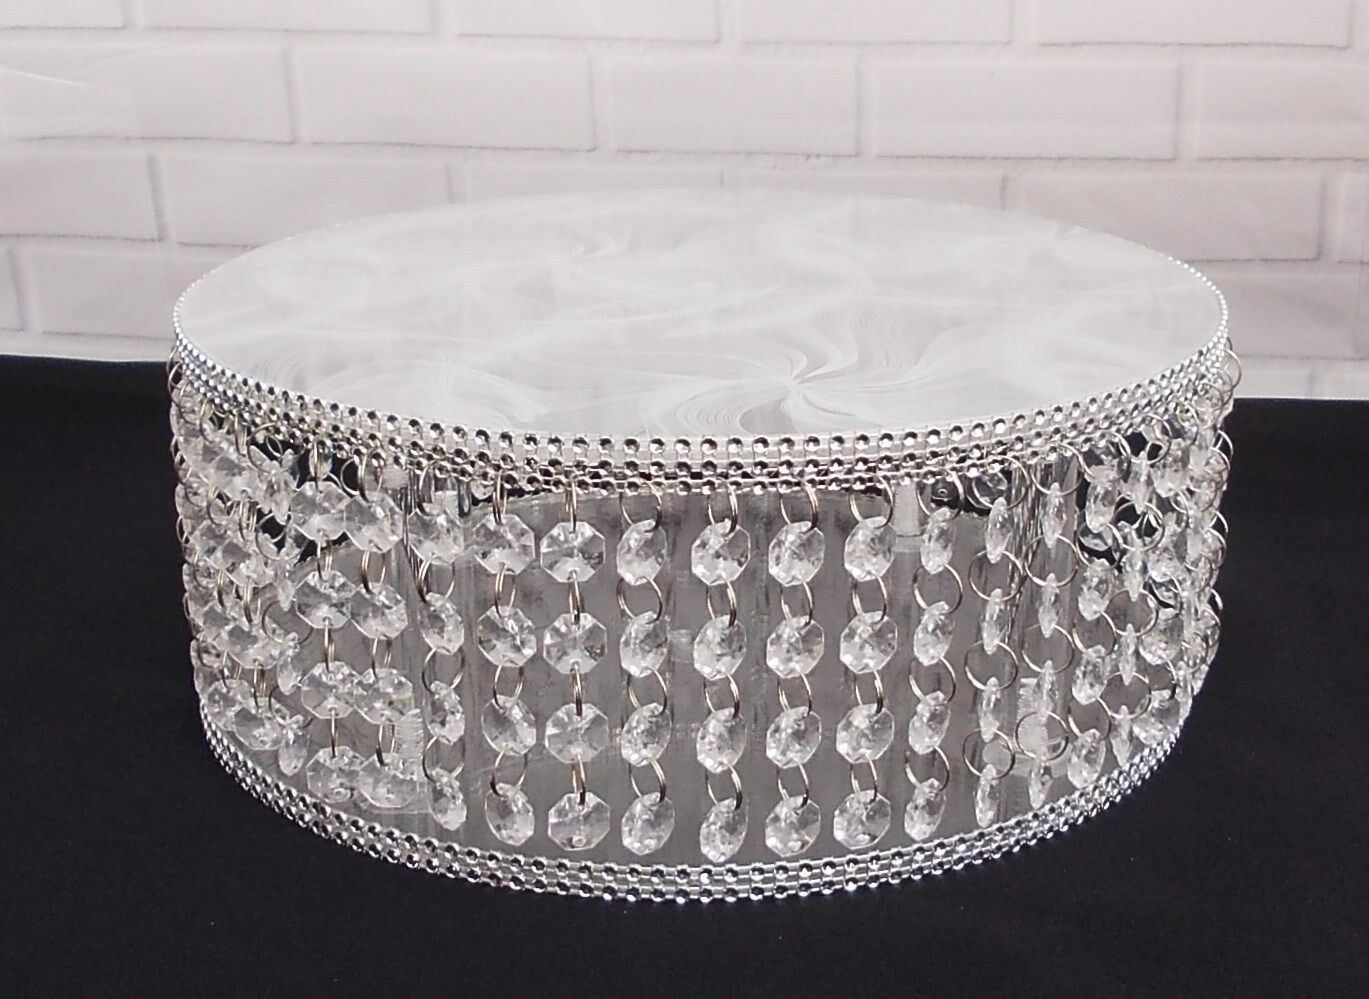 Inch Acrylic Cake Stand Plates